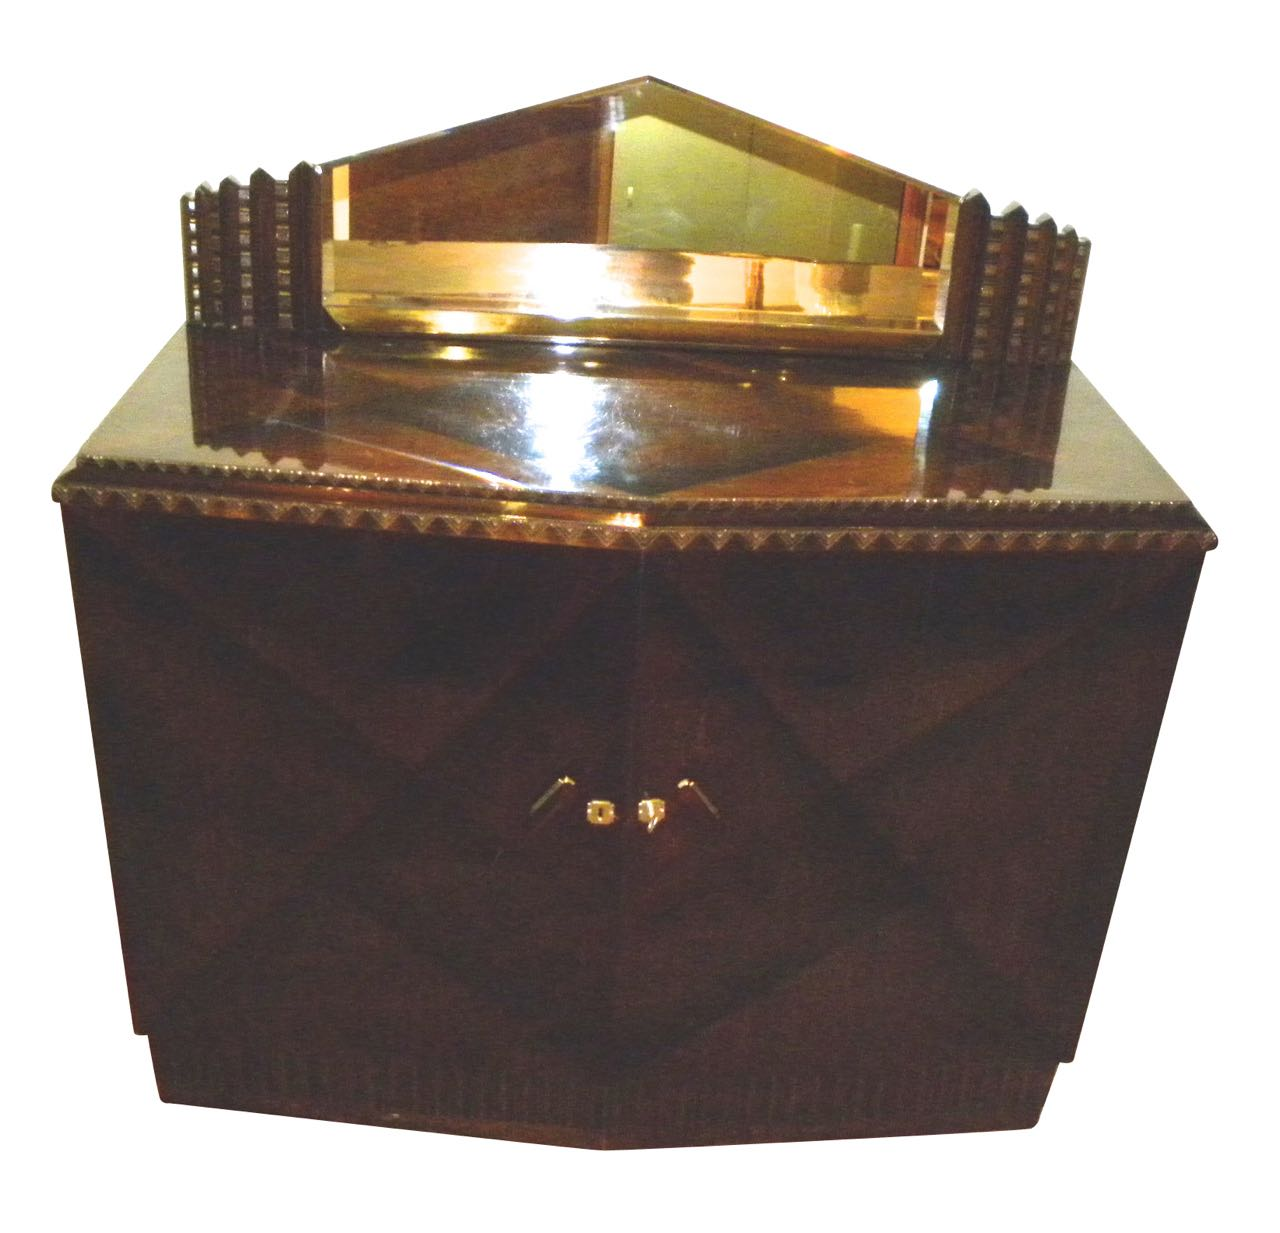 European Art Deco Credenza with Lacquered Palisander Finish